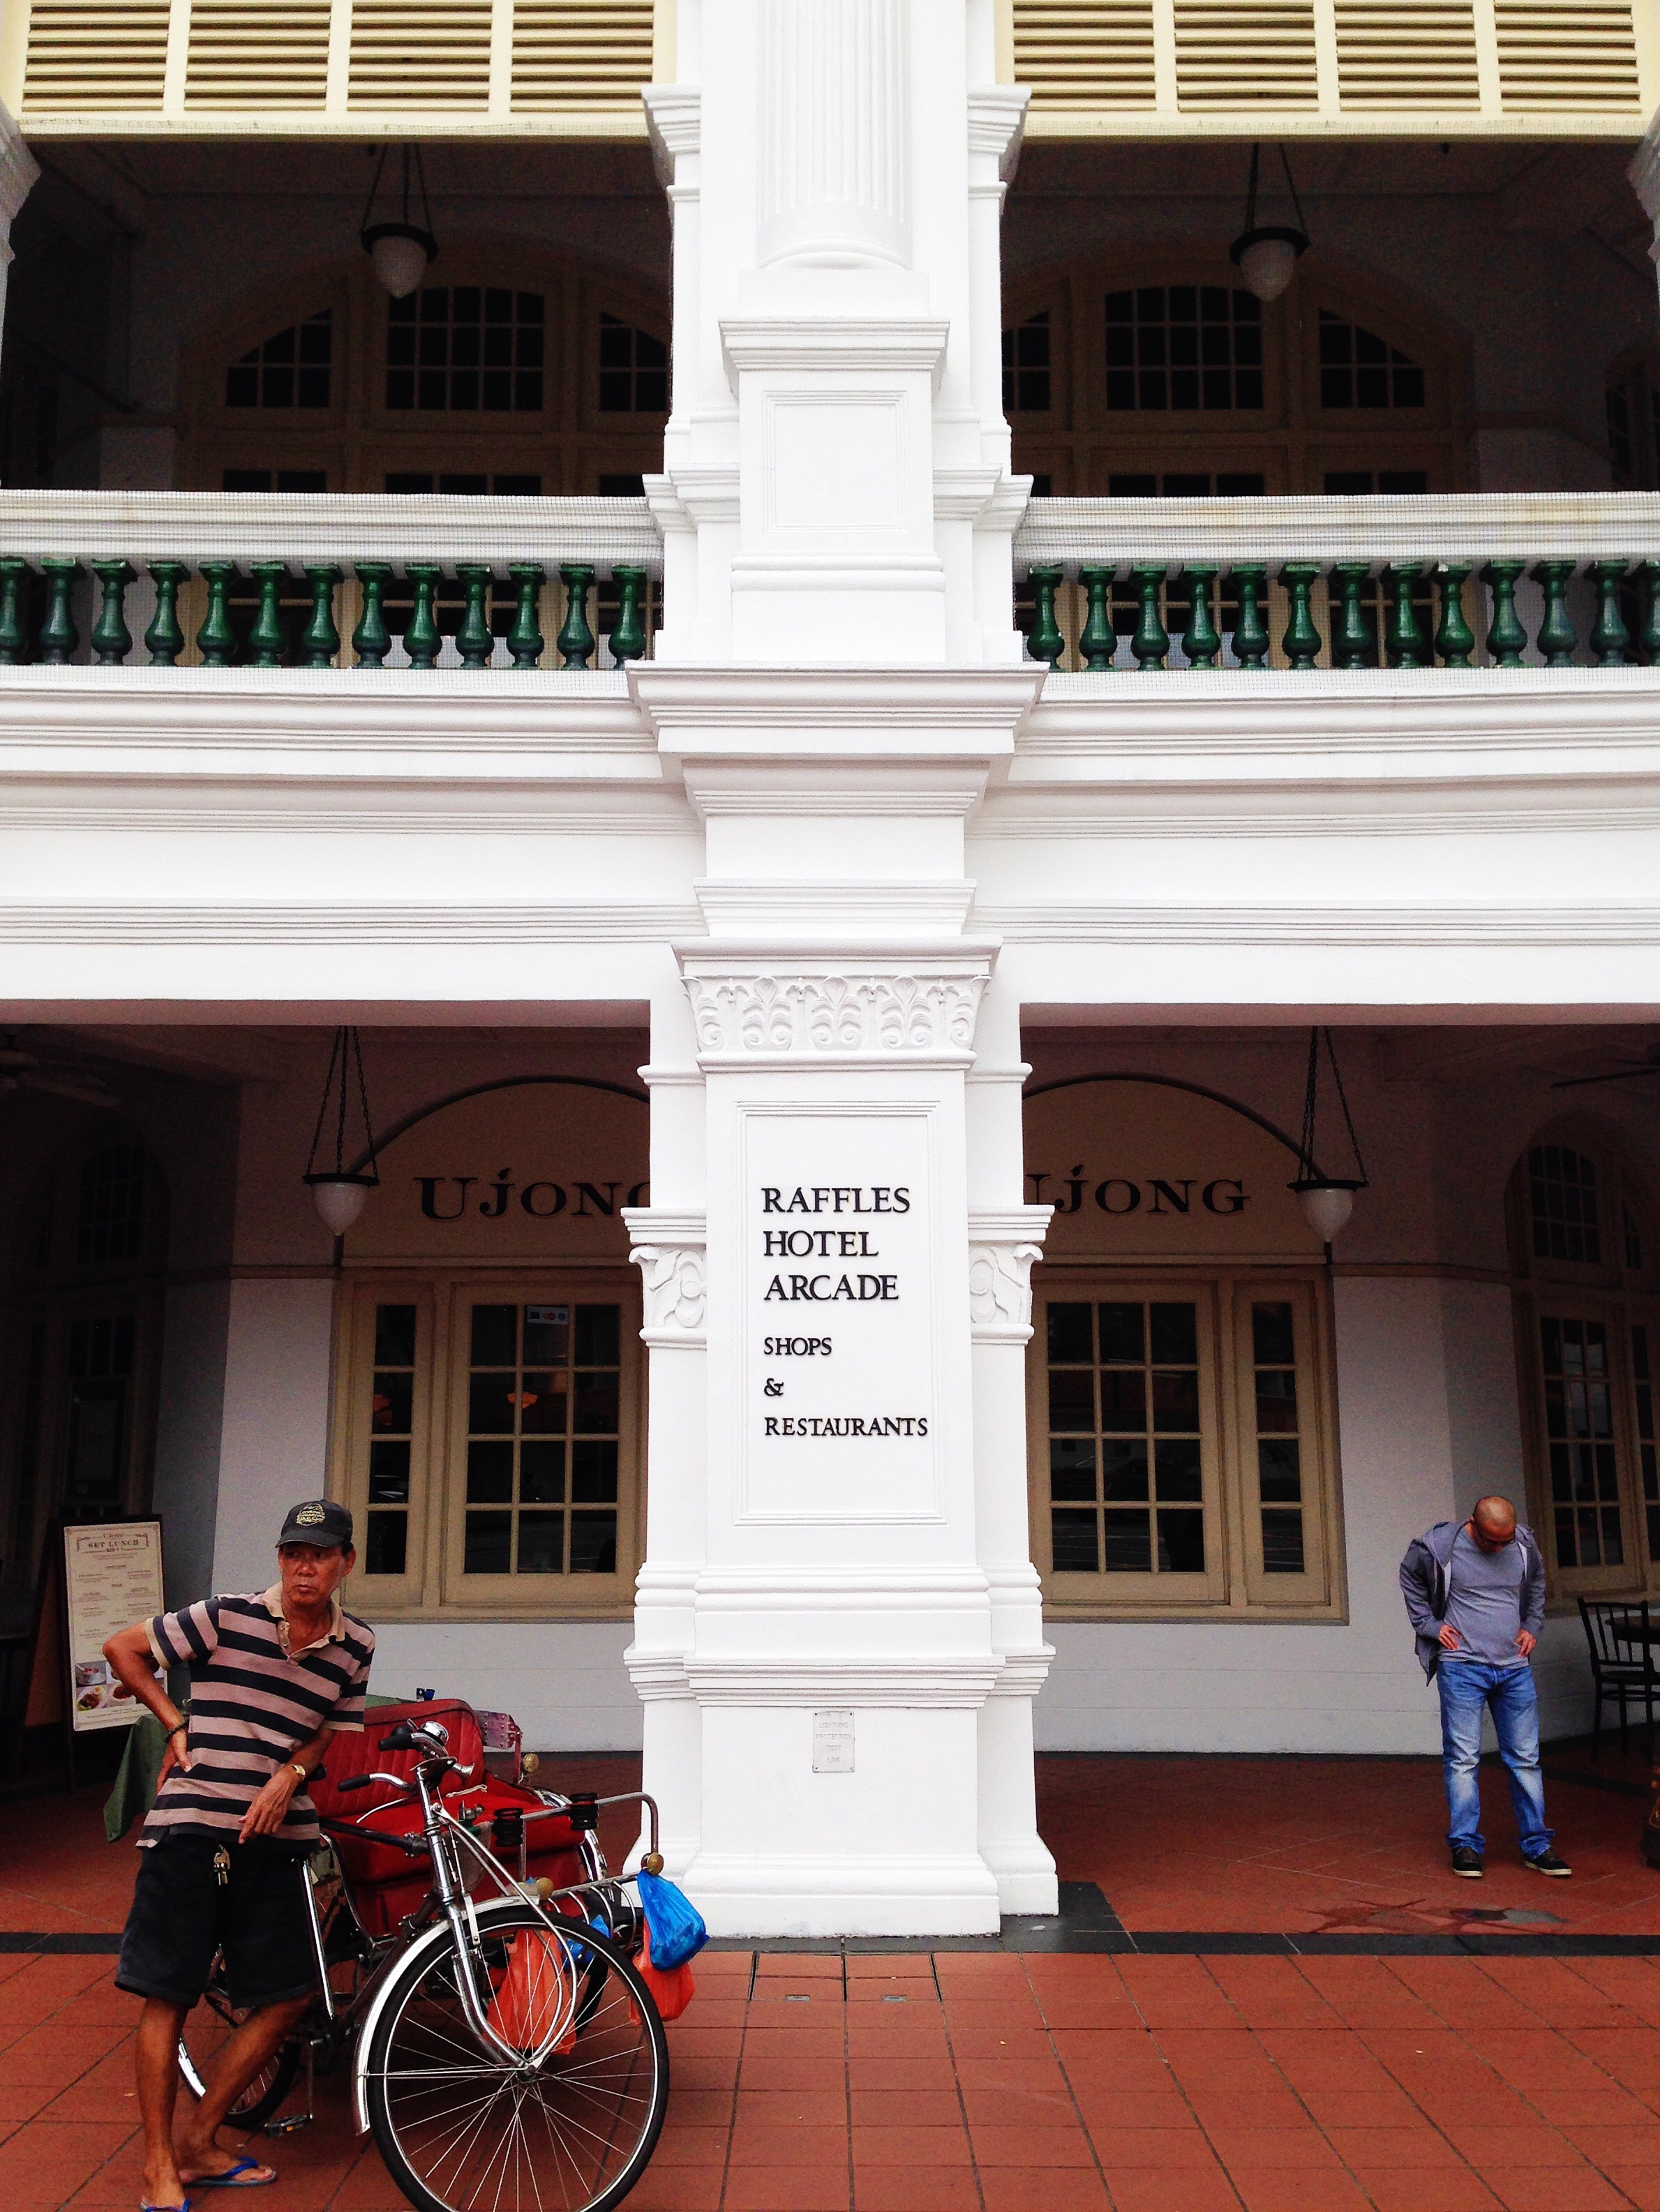 Rickshaw driver on duty in front of the Raffles